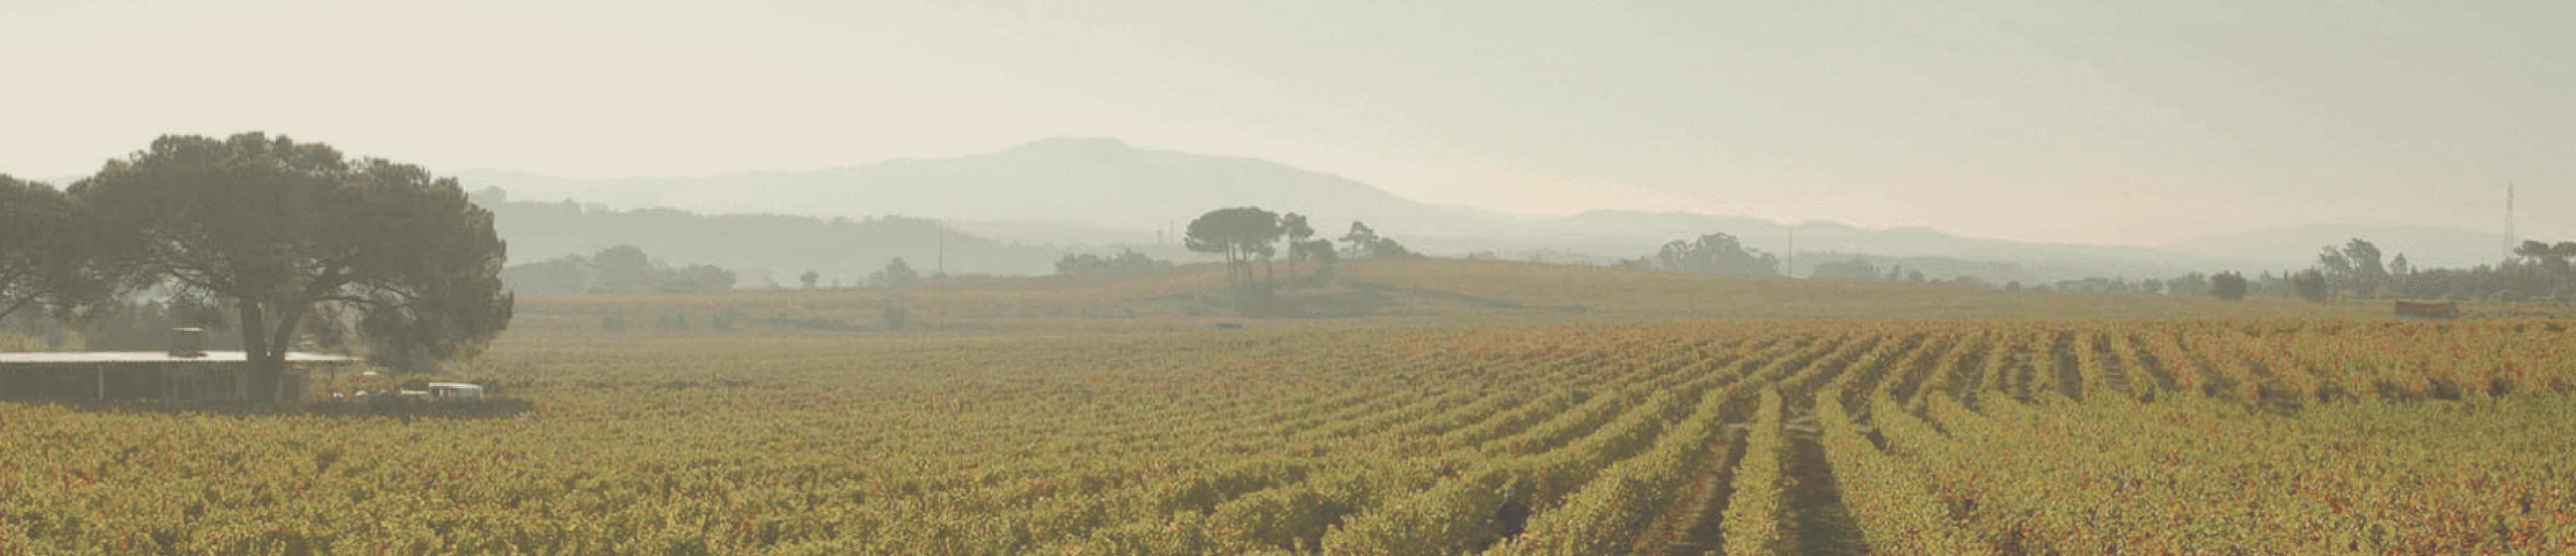 Wines & Winemakers by Saven